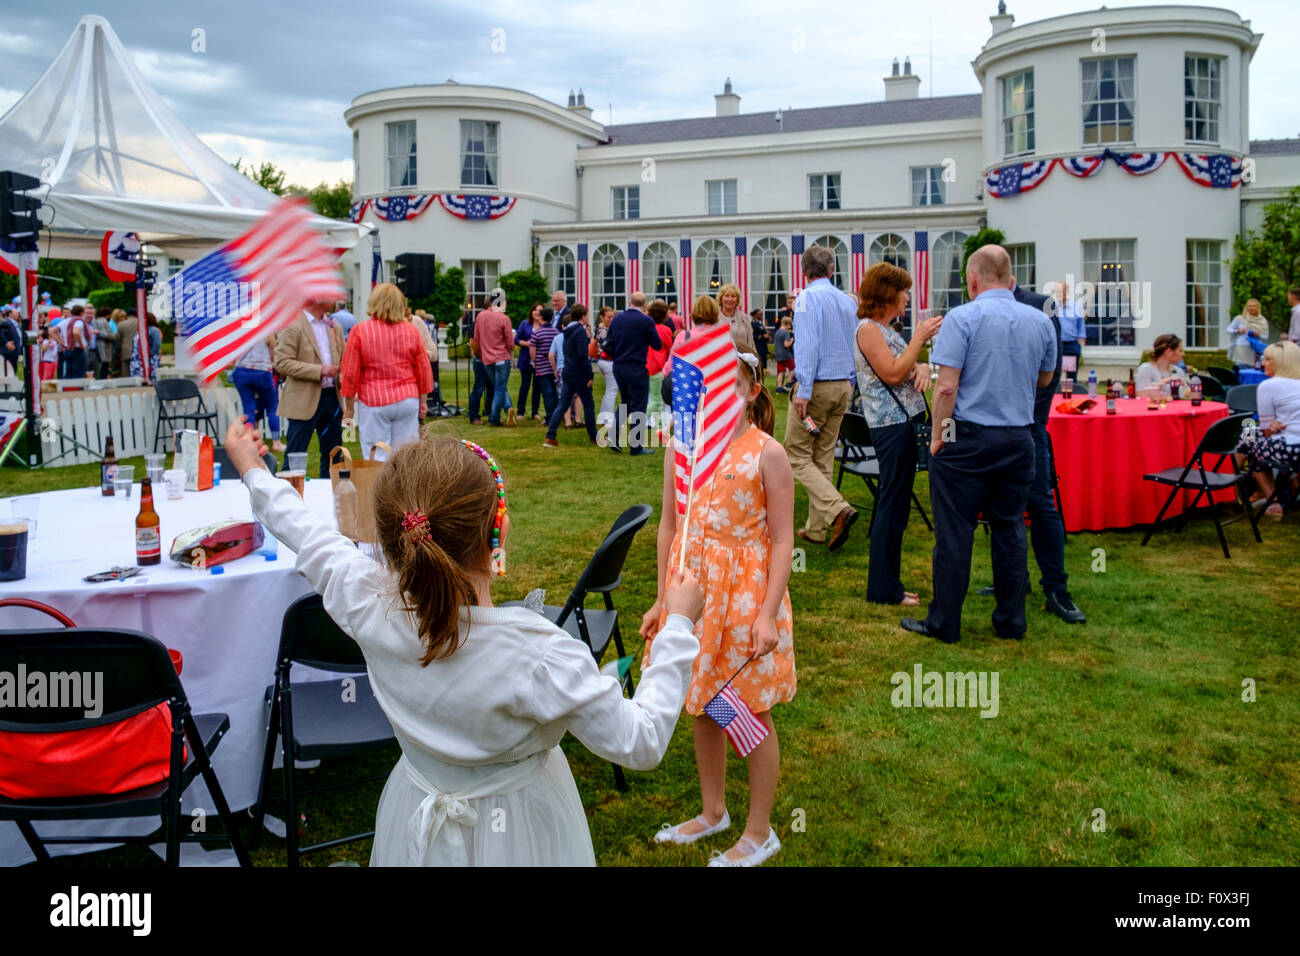 fourth 4th july celebration american independence - Stock Image